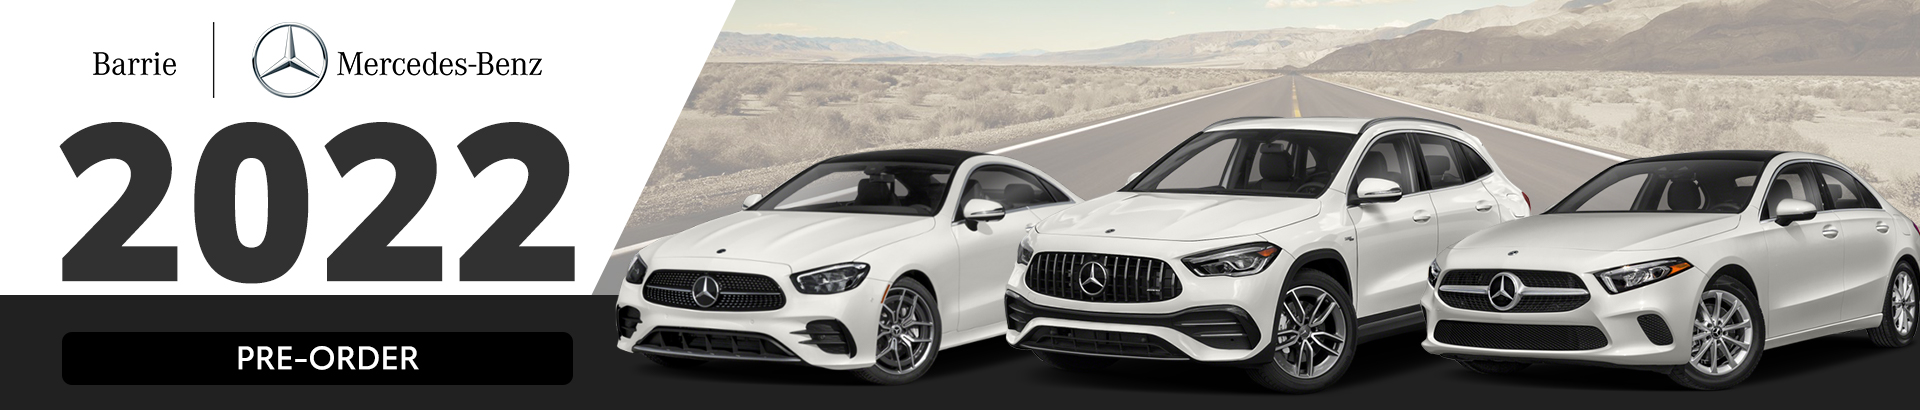 Pre-Order Your 2022 Mercedes-Benz Today